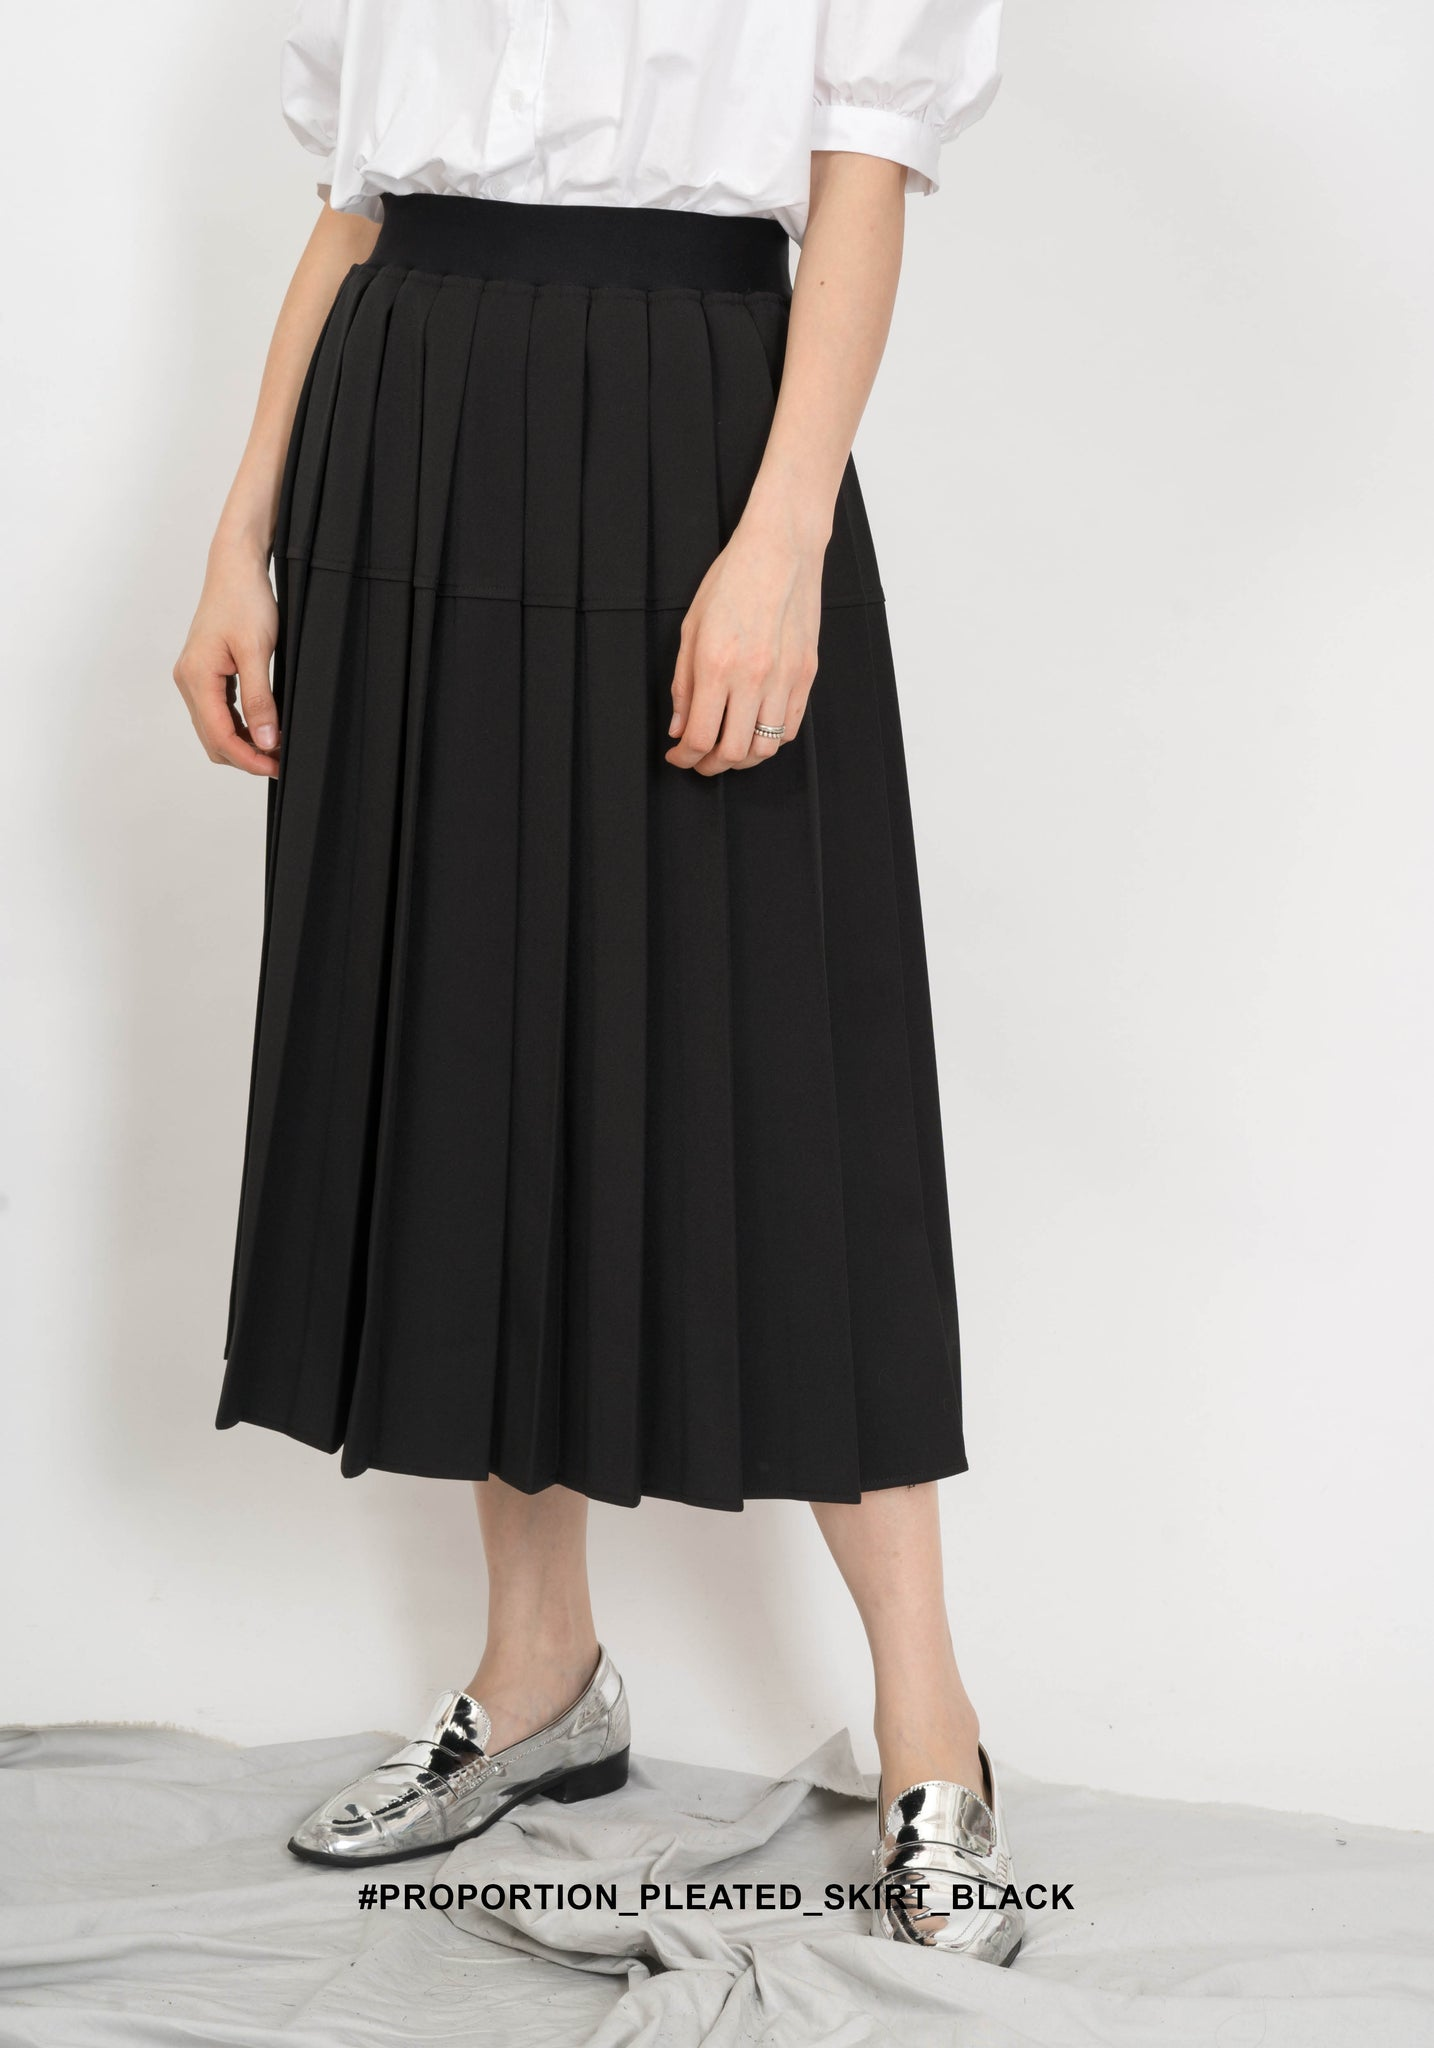 Proportion Pleated Skirt Black - whoami